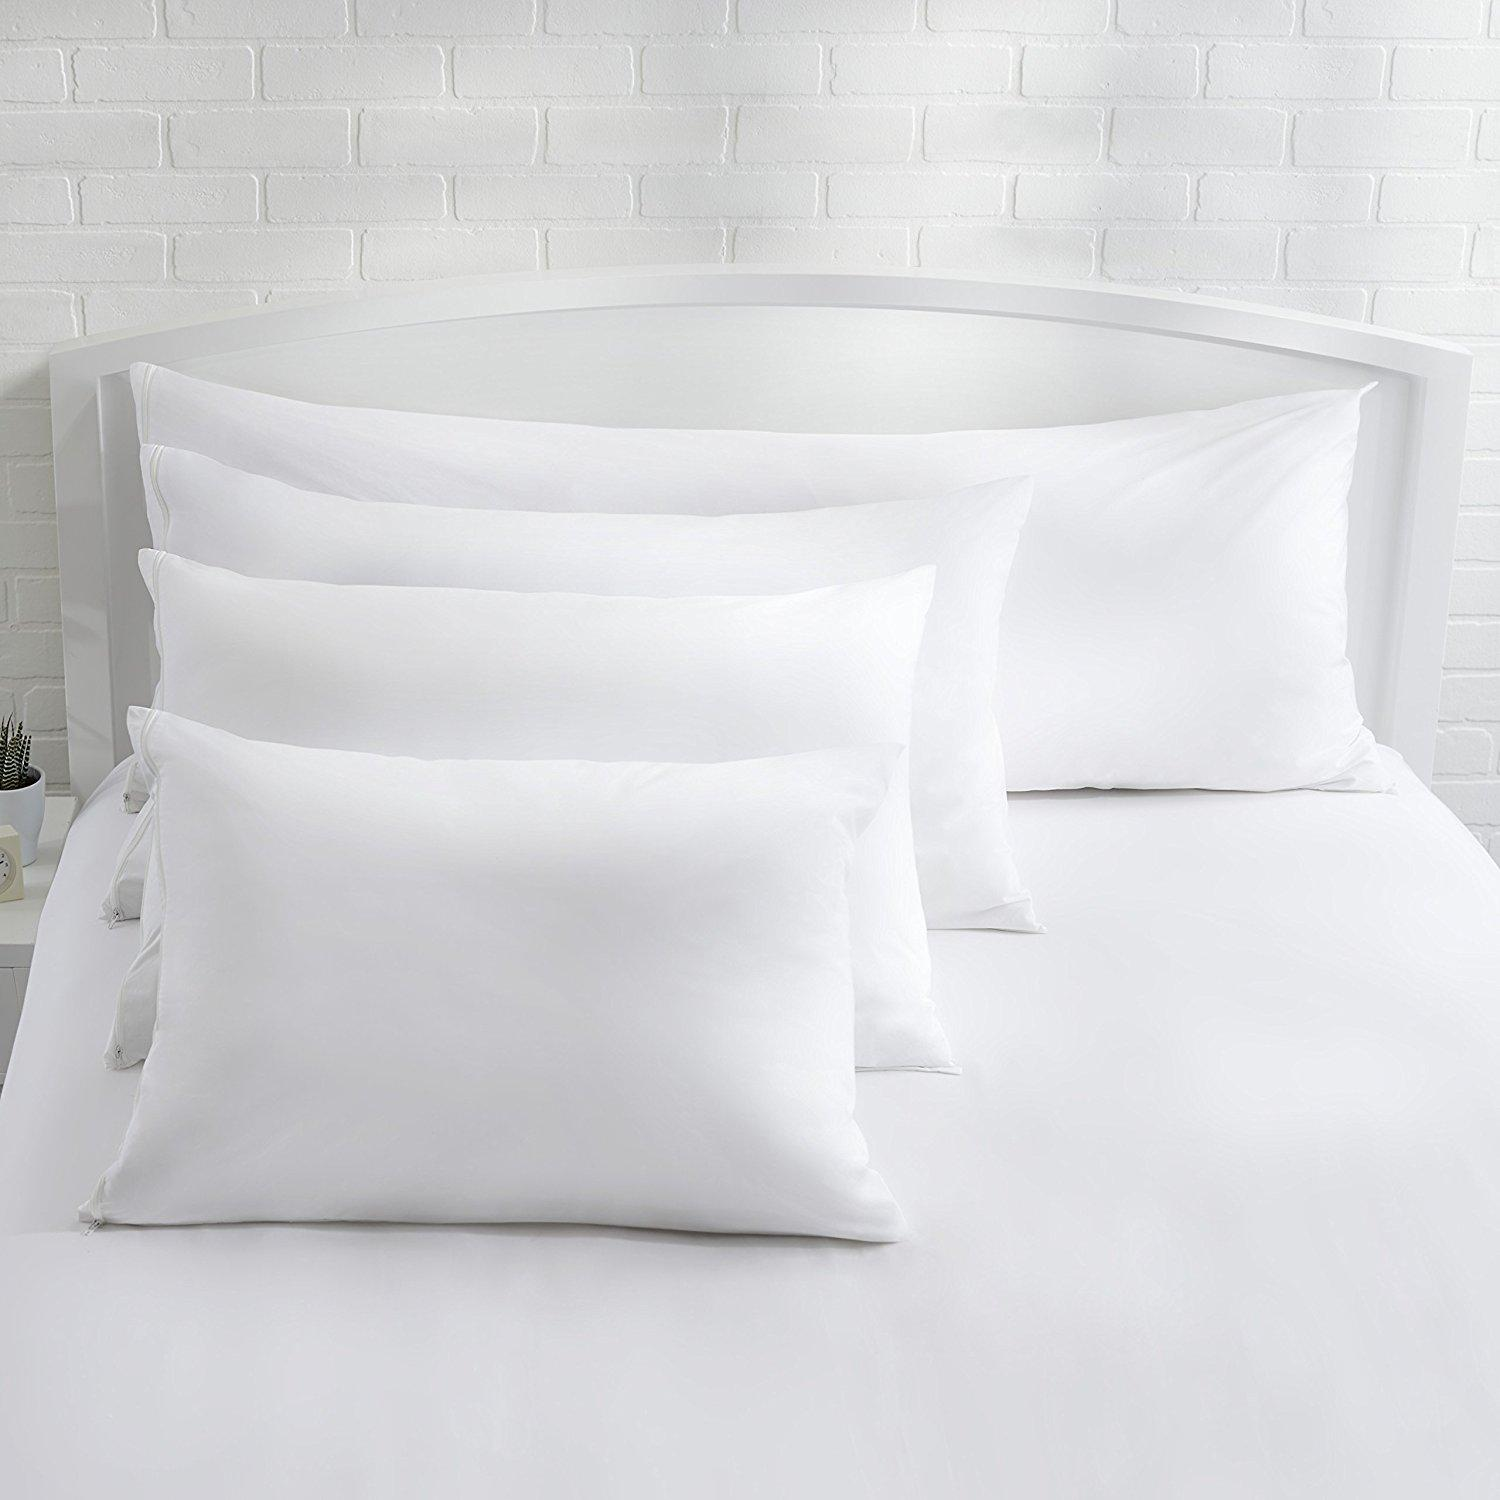 AmazonBasics Hypoallergenic Pillow Protector, White, Standard: Amazon.ca: Home & Kitchen